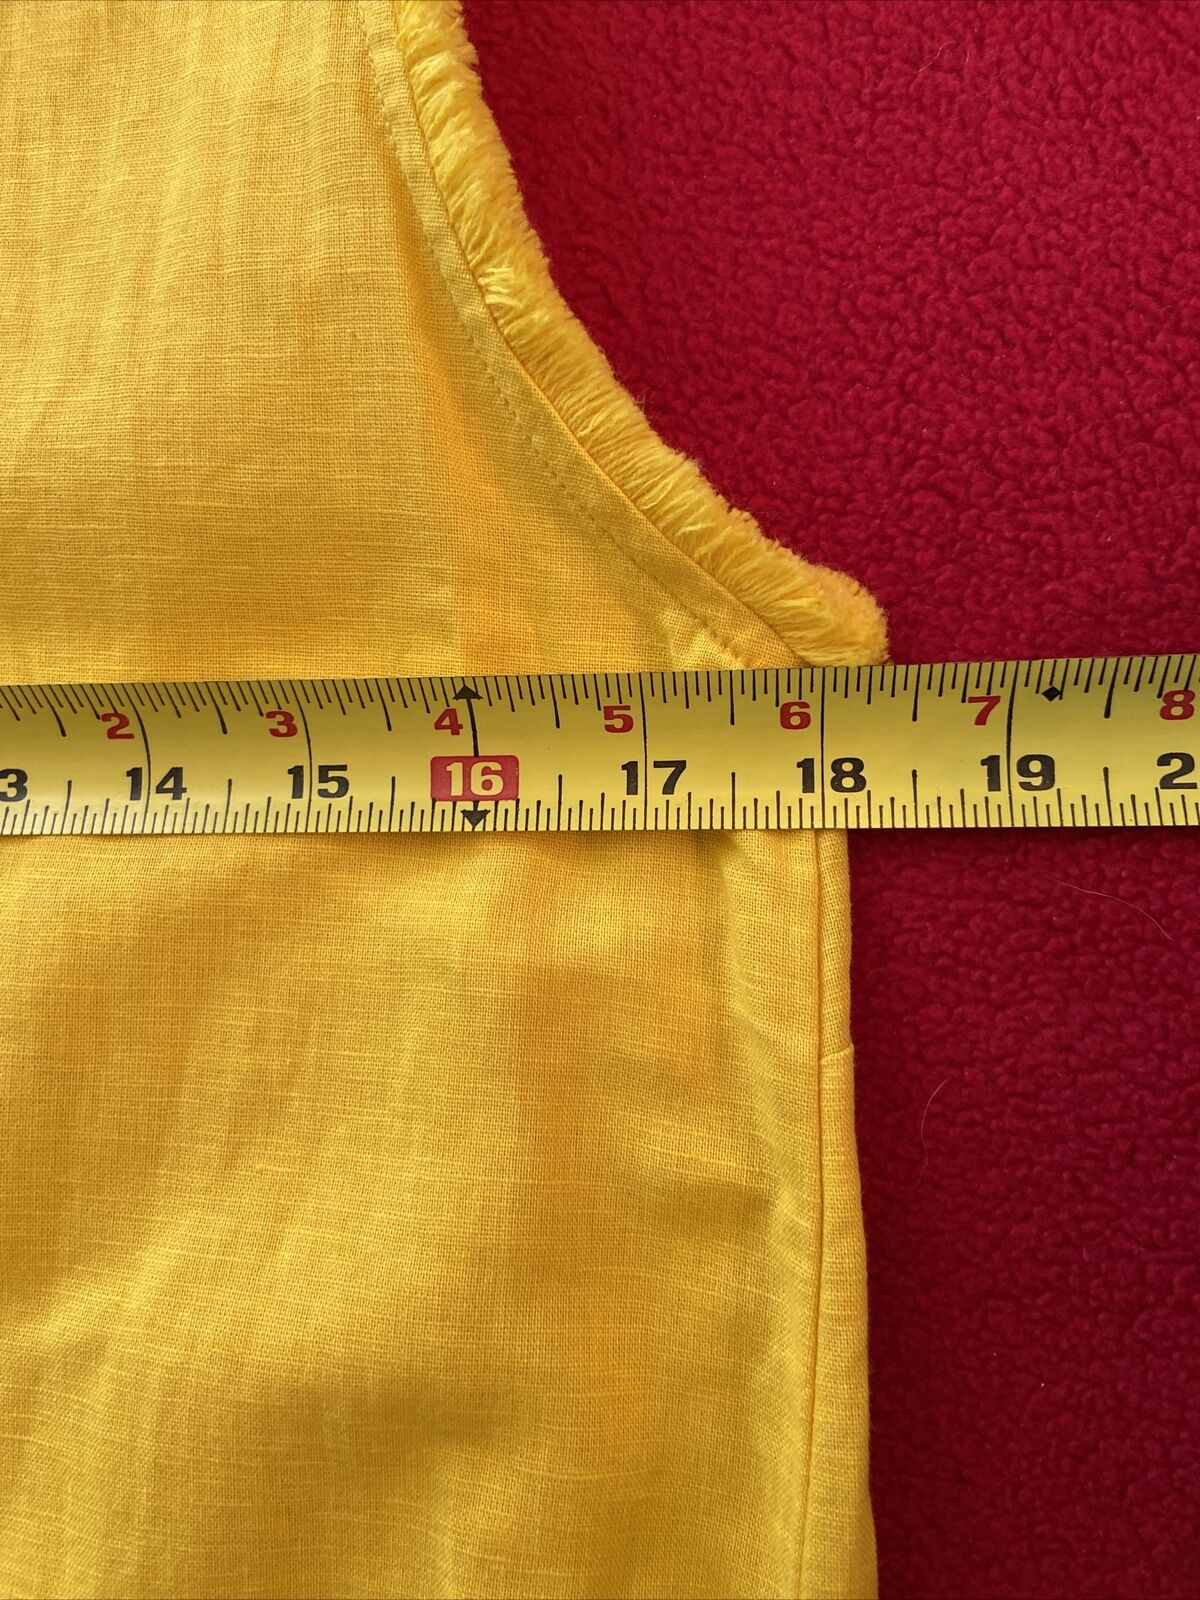 floryday bright yellow linen shift dress size med… - image 8